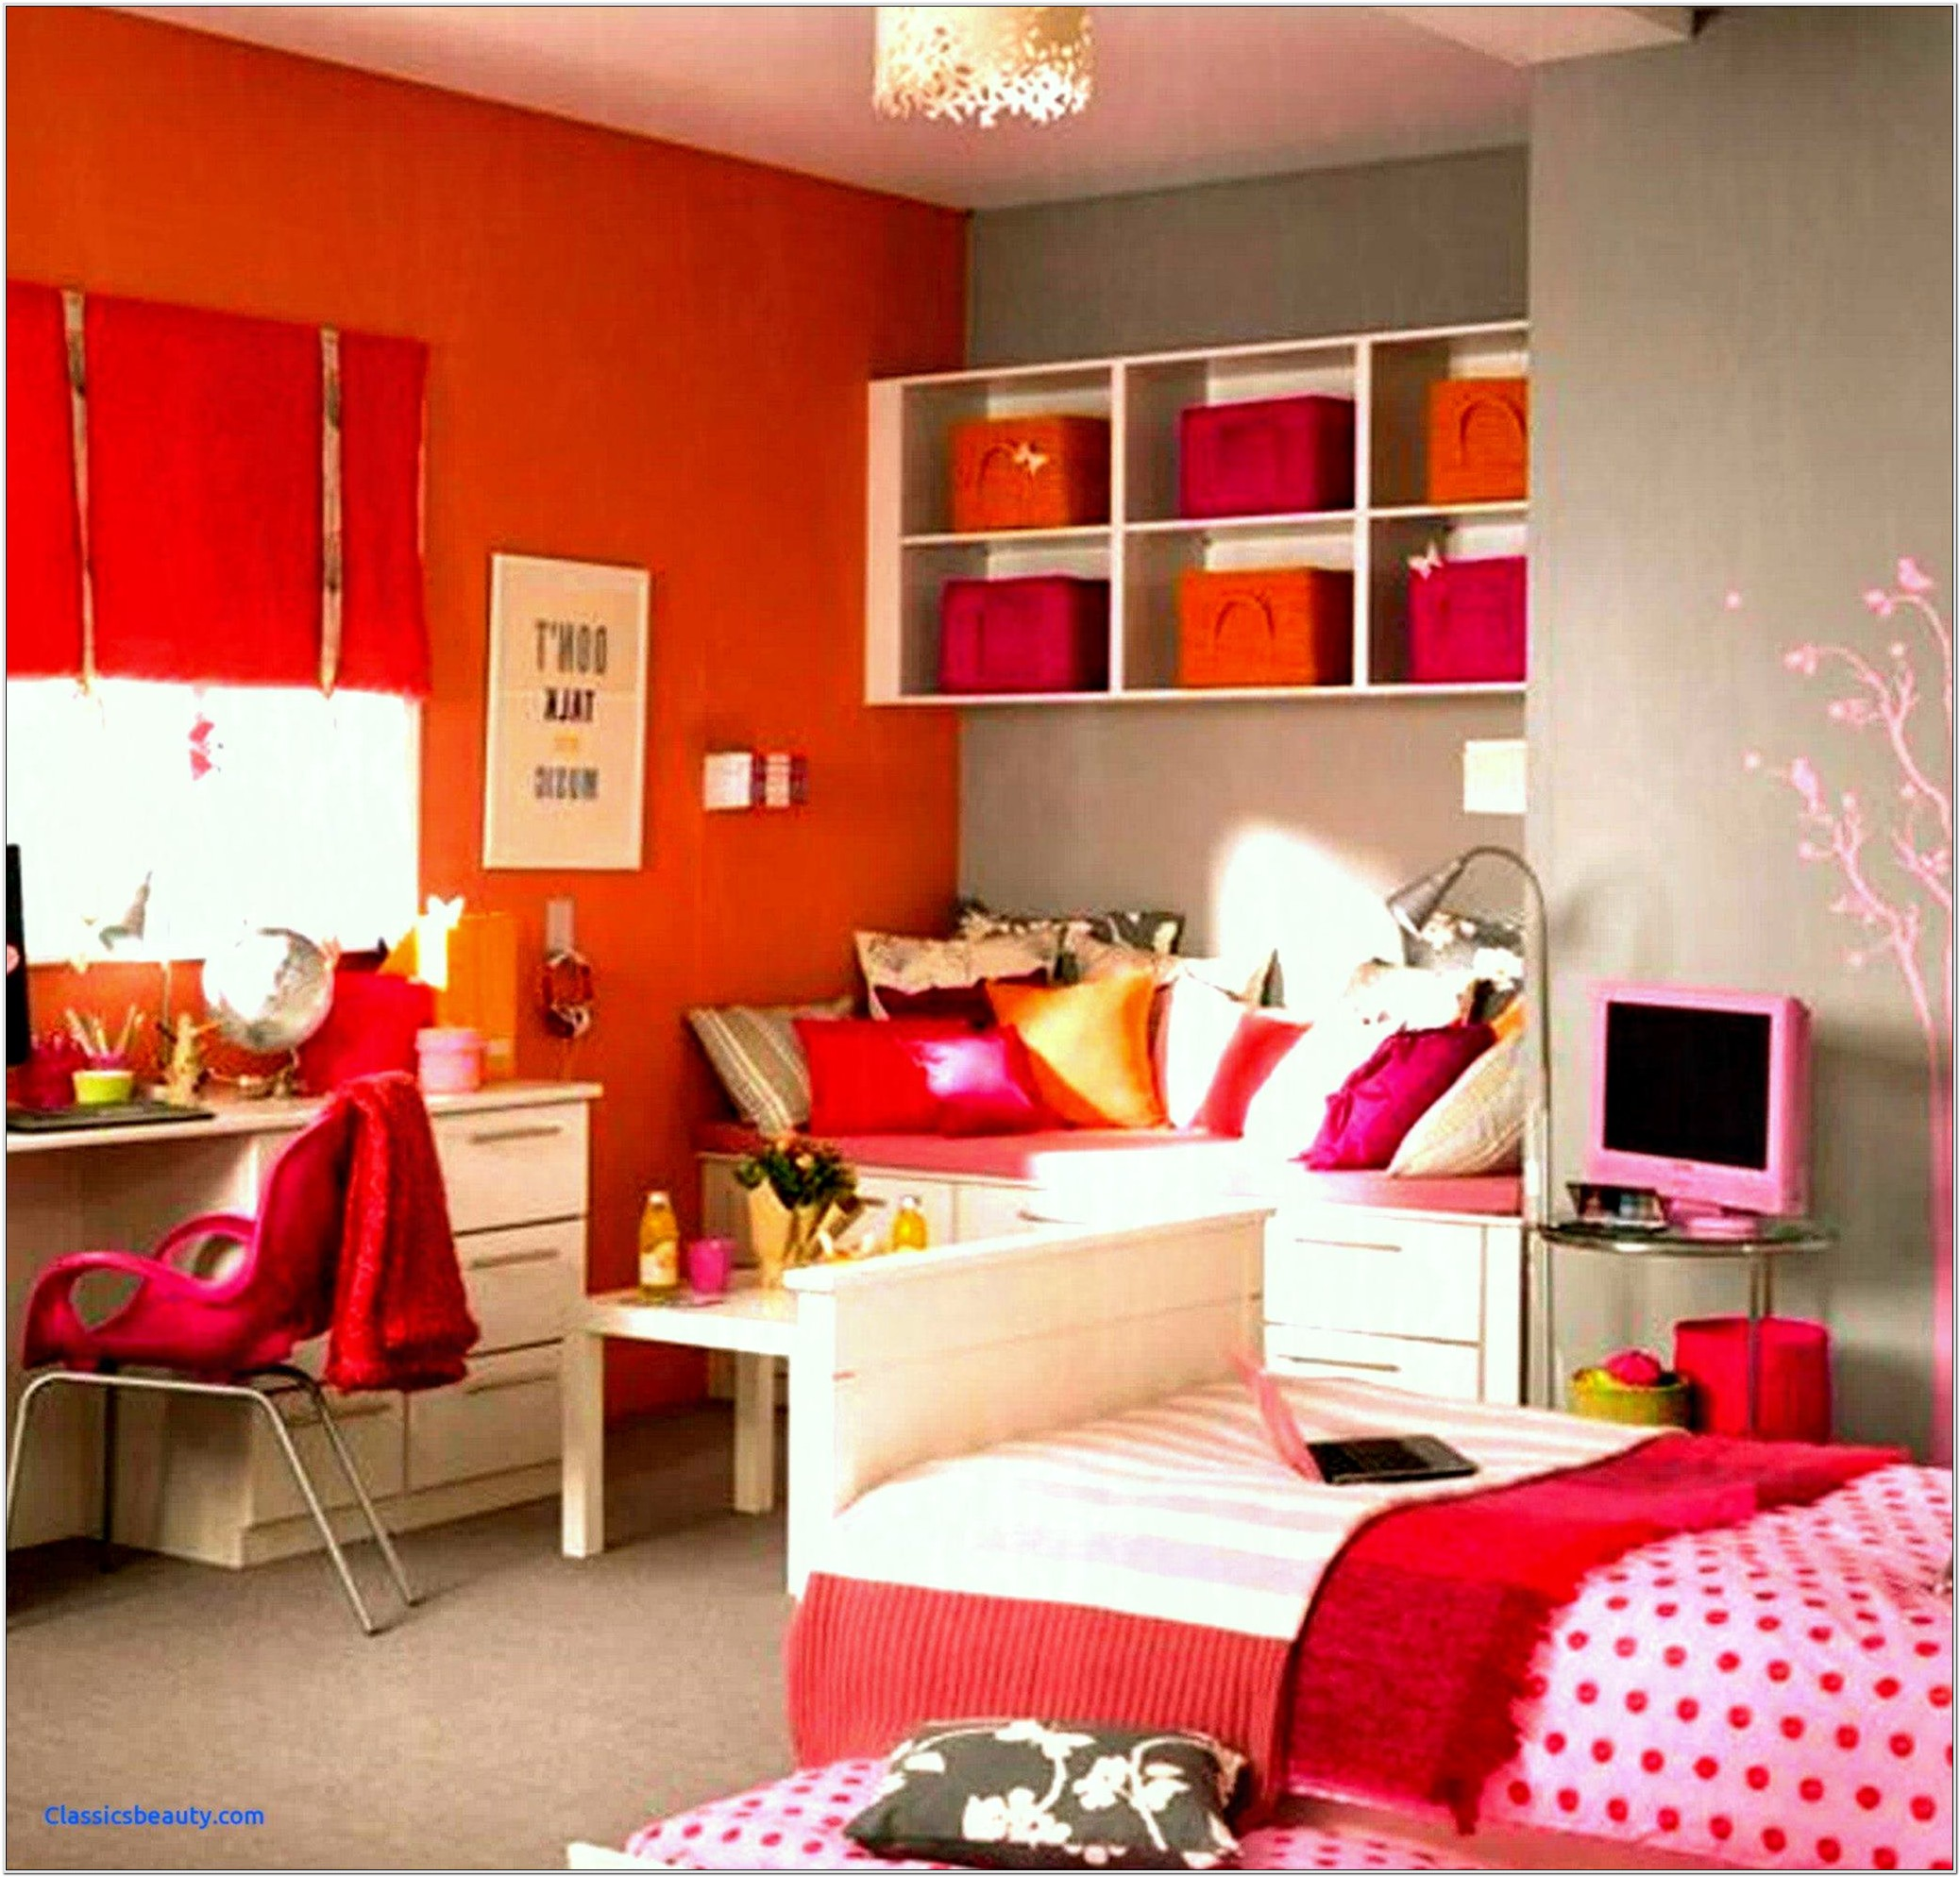 Decorate Small Bedroom Low Budget